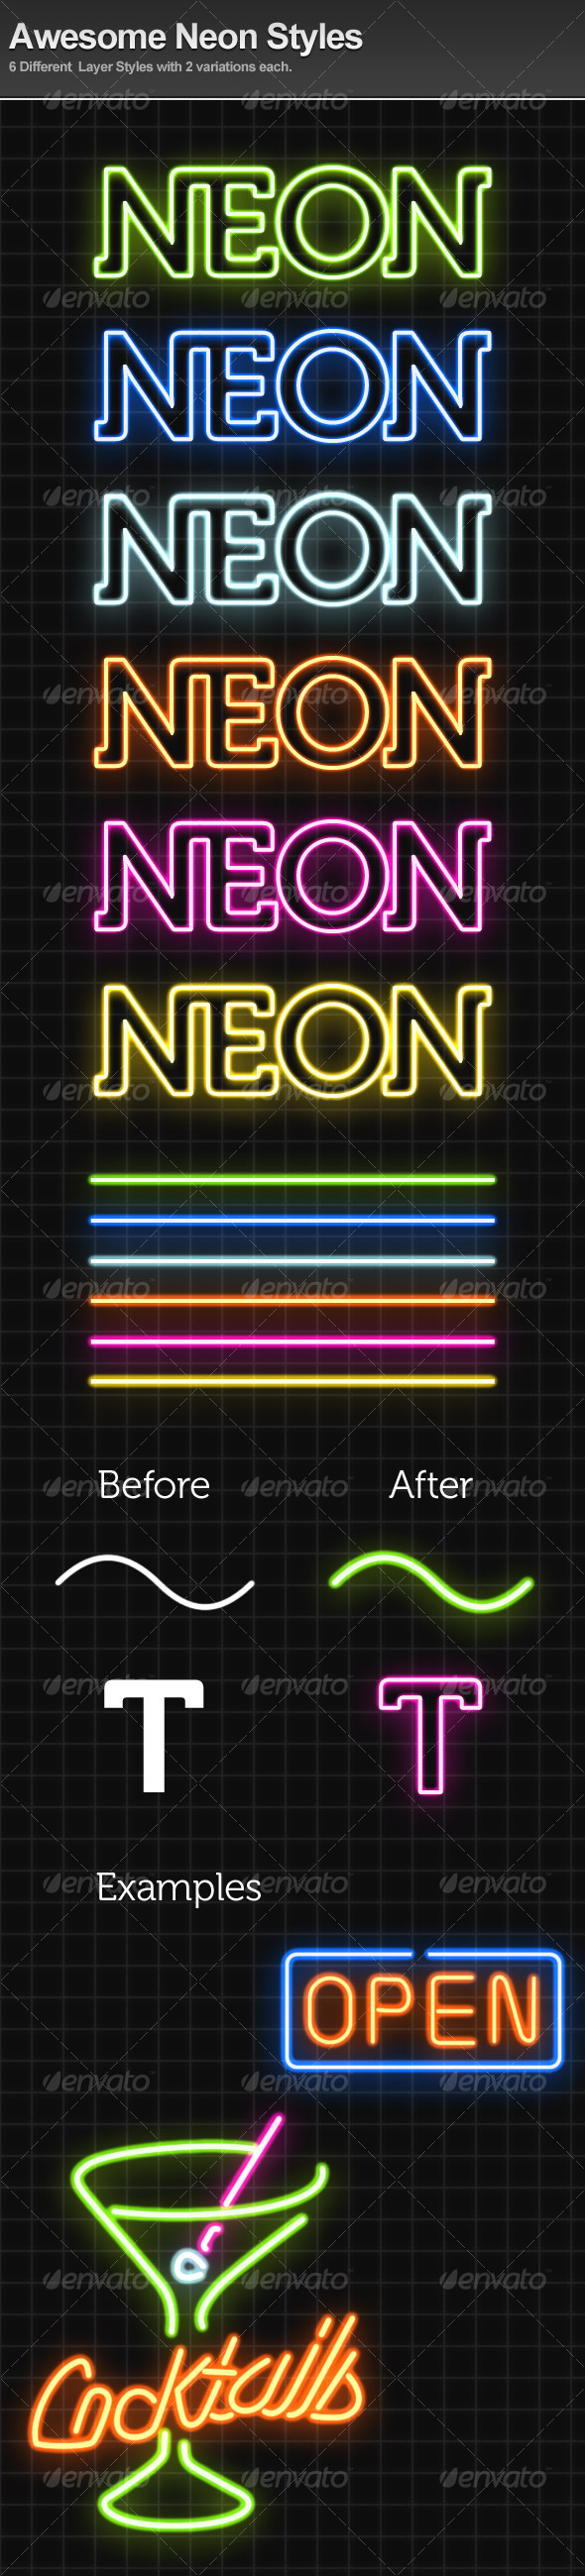 Awesome Neon Styles - Text Effects Styles